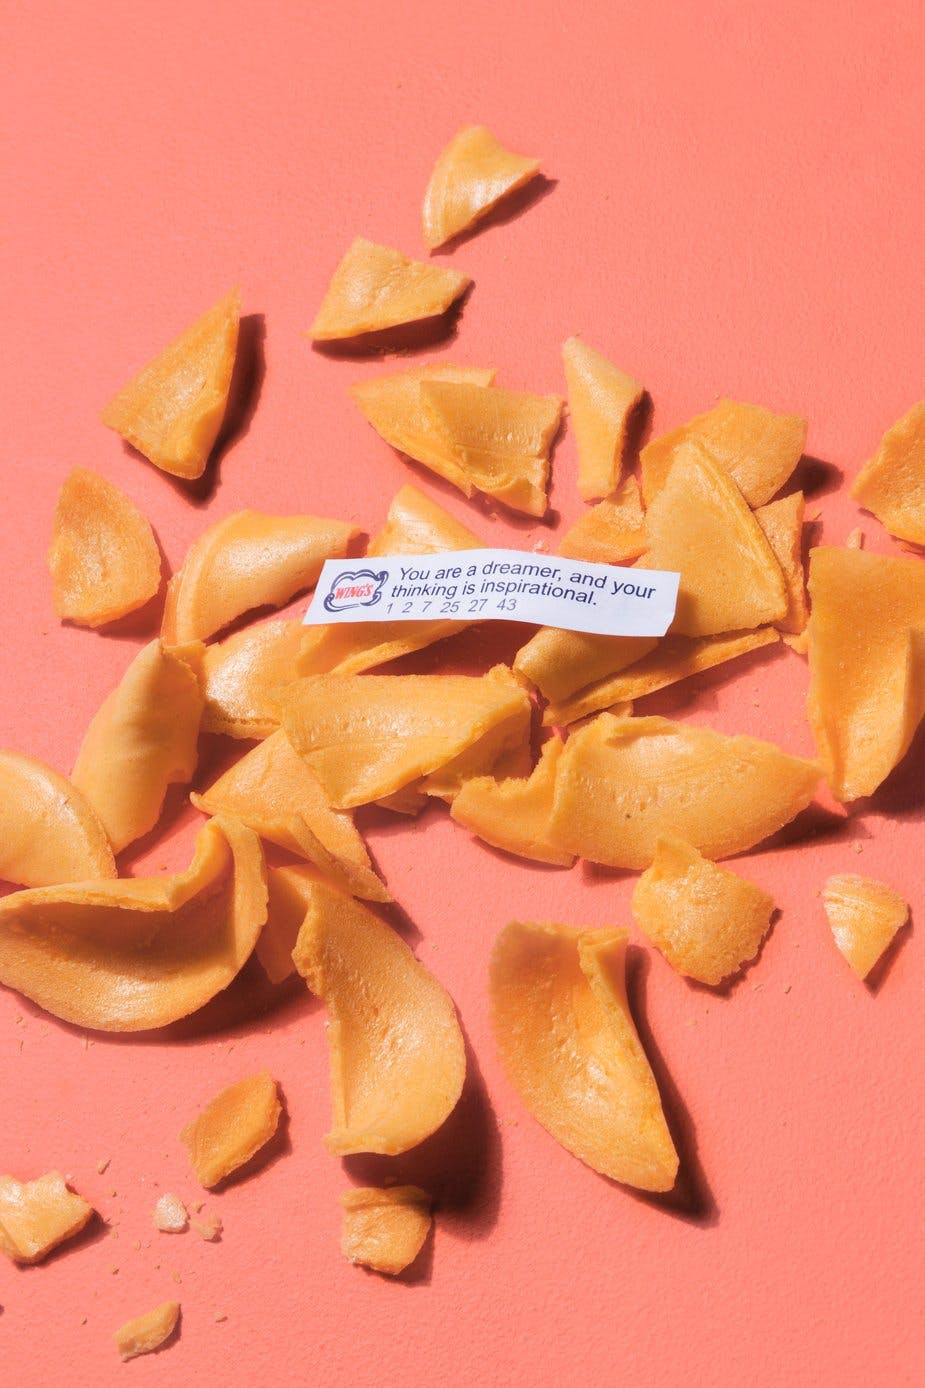 fortune cookies smashed on pink background